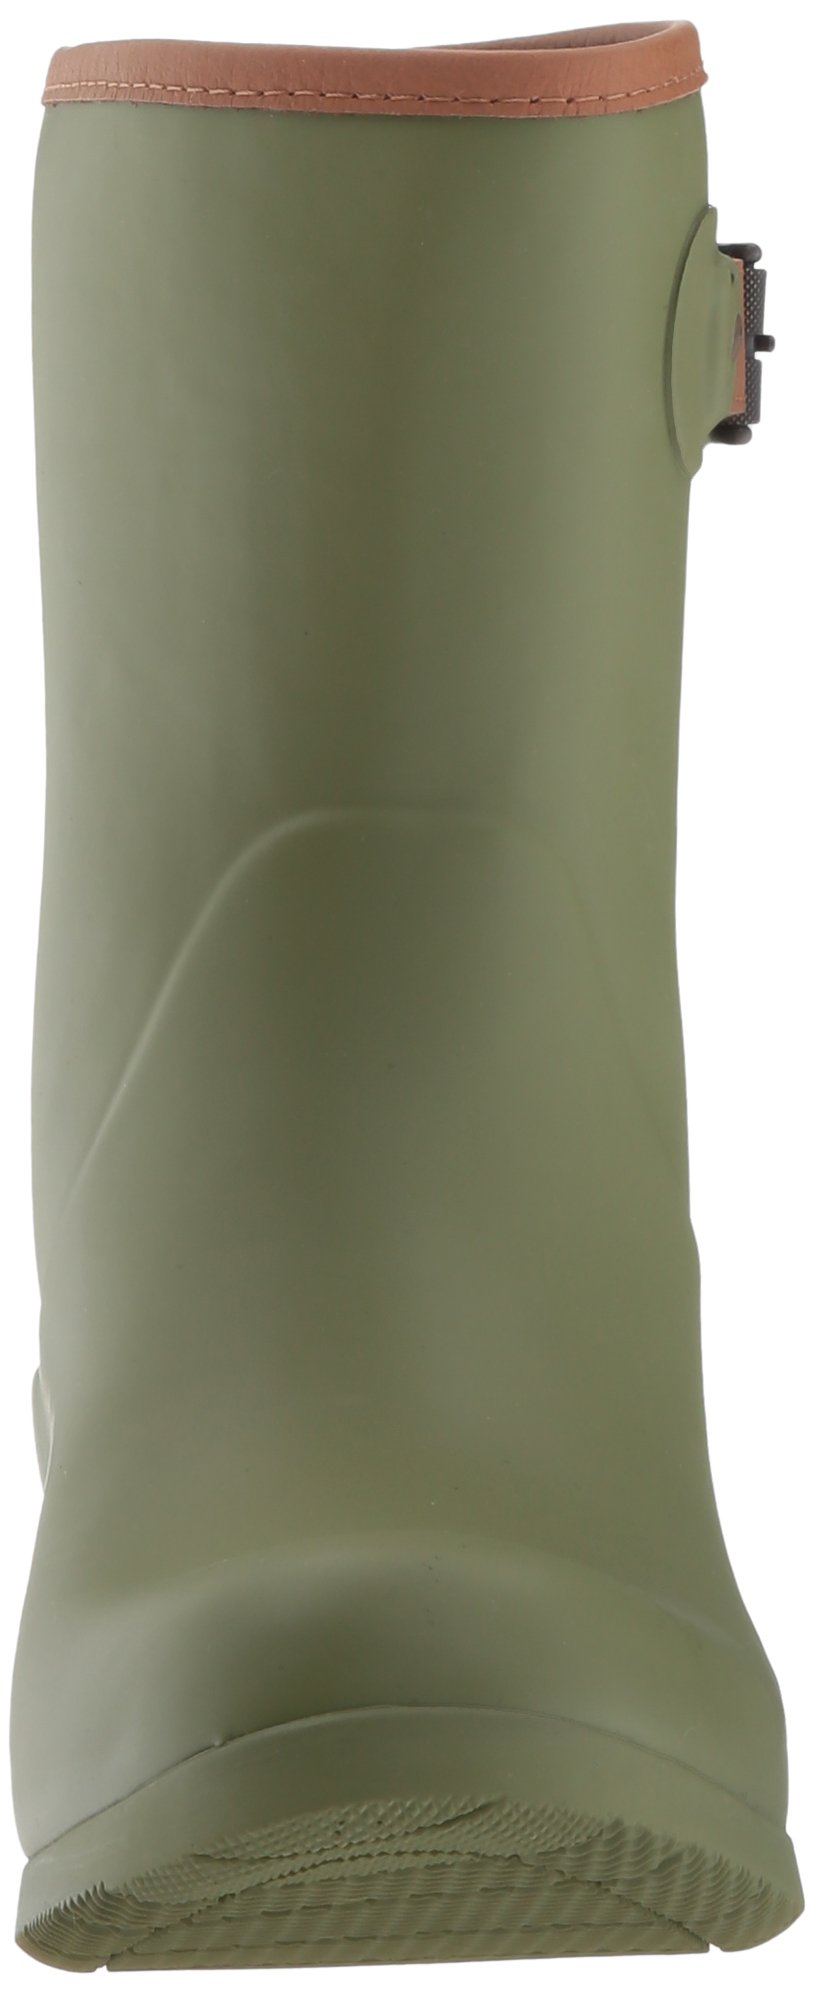 Chooka Women's Mid-Height Memory Foam Rain Boot, Olive, 9 M US by Chooka (Image #4)